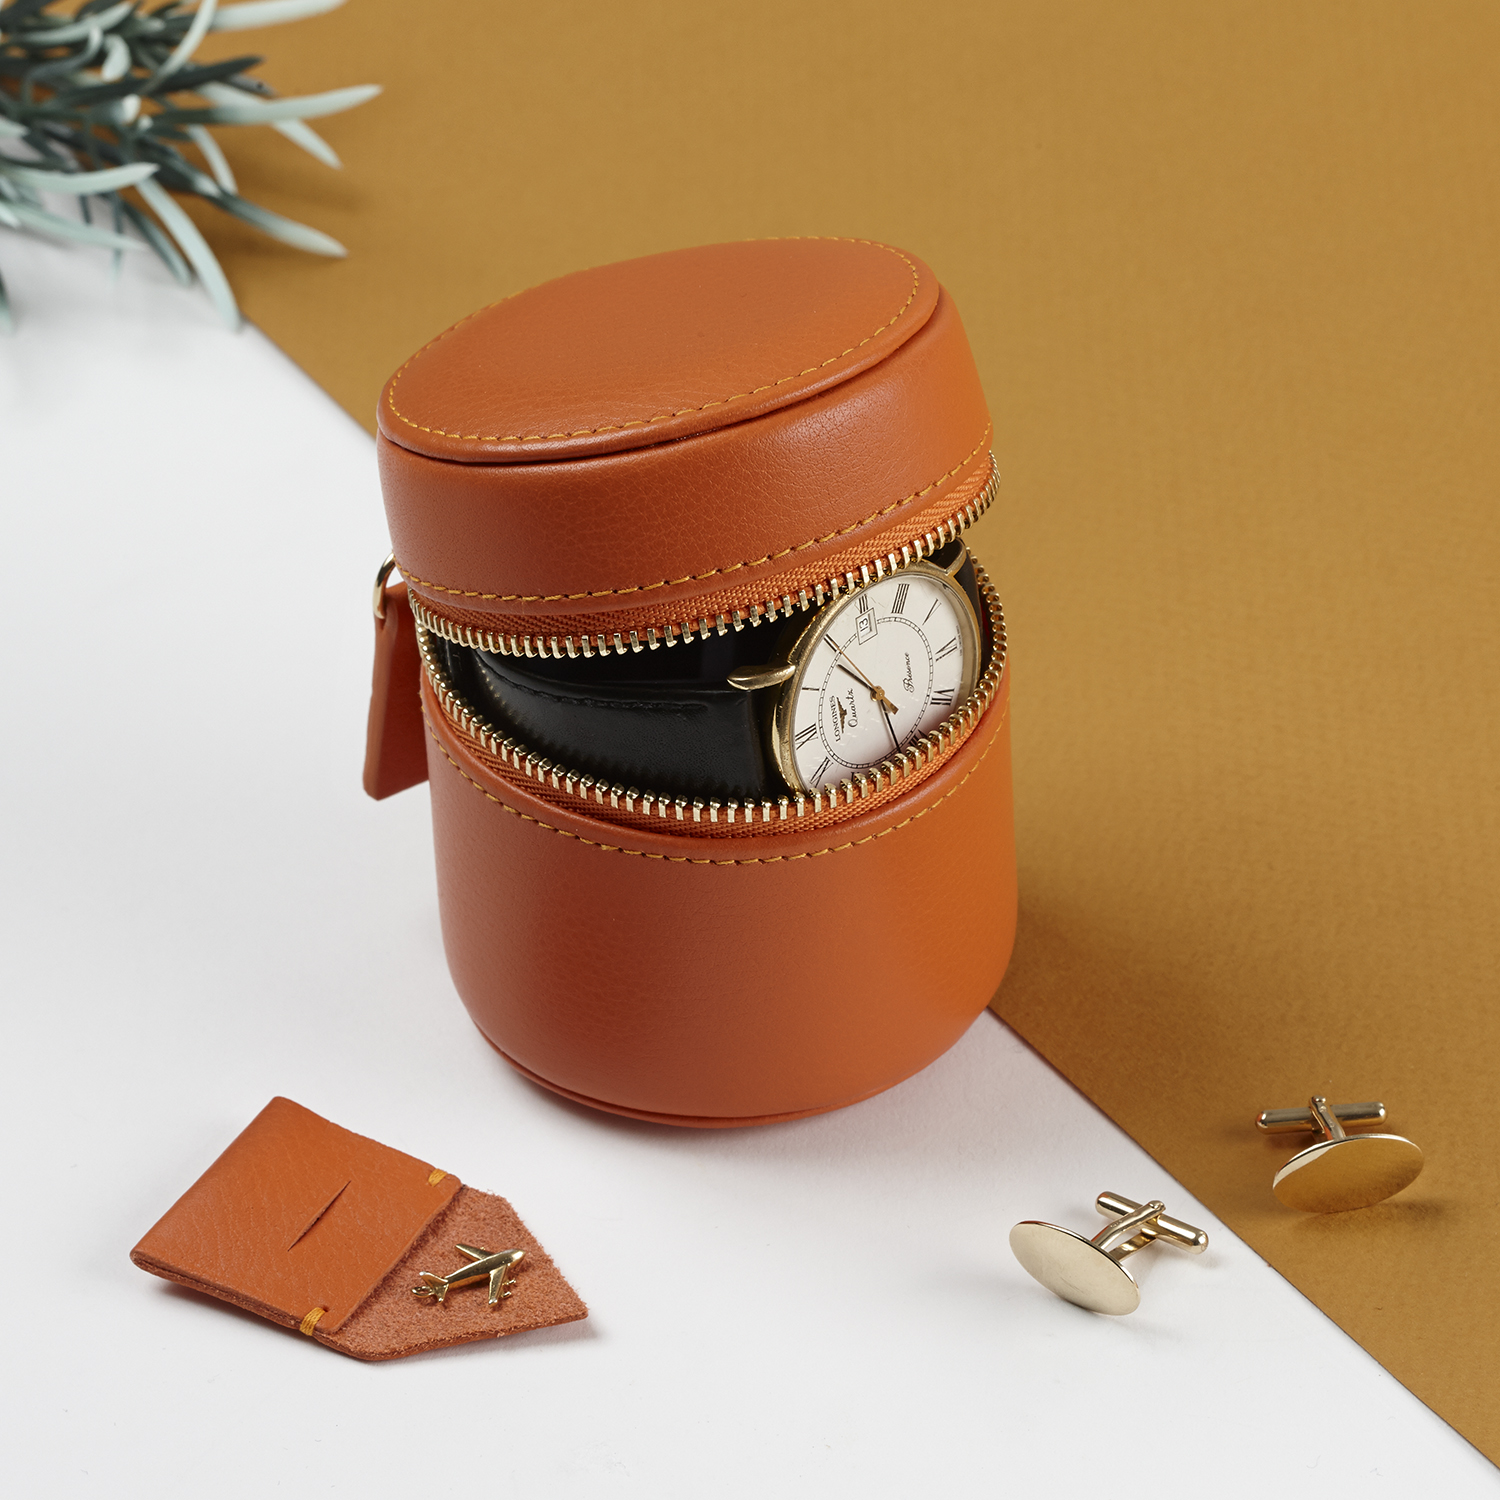 Amber Orange Lifestyle Watch Box.jpg